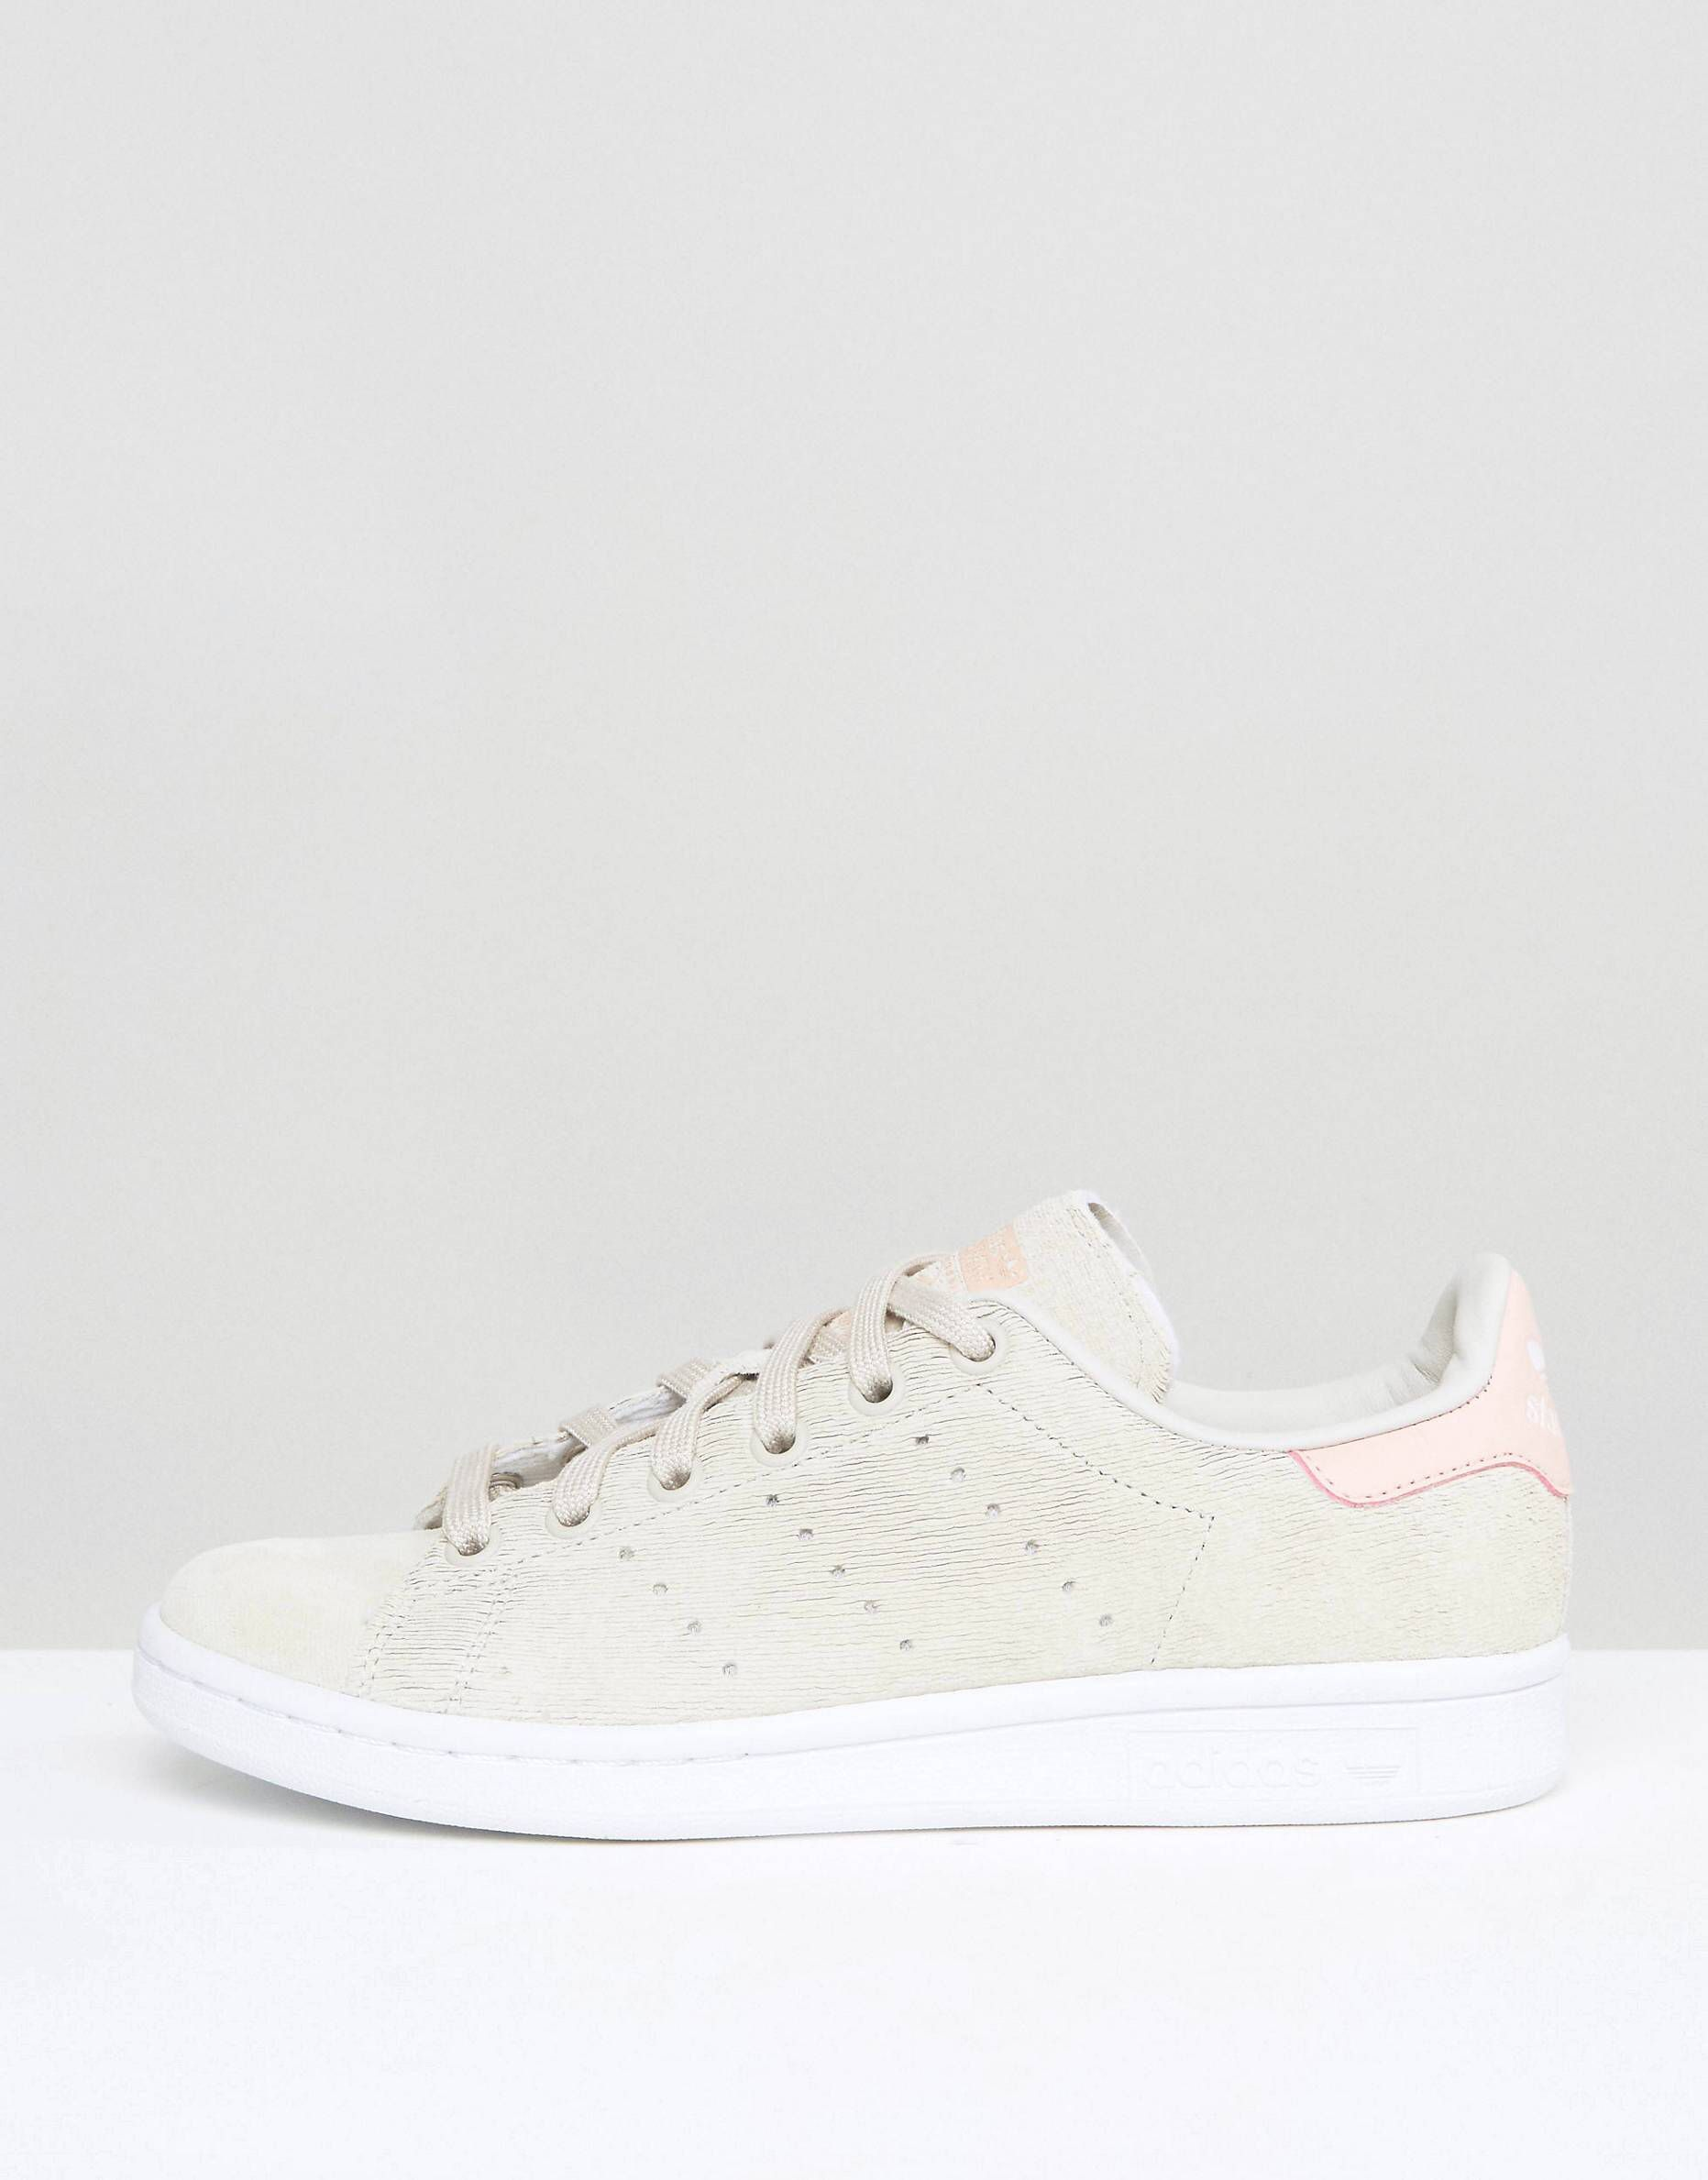 8b5047e2d0ac7 Adidas Stan Smith suede grey and pink sneakers, size 39.5 or 40 ...